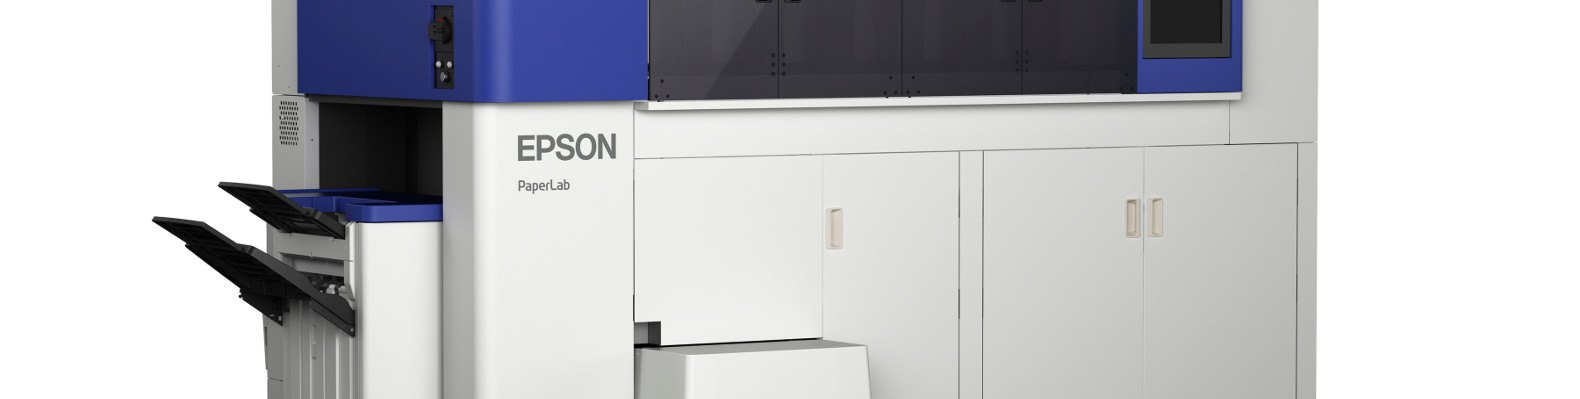 Epson's PaperLab can recycle 6,720 sheets of paper in a